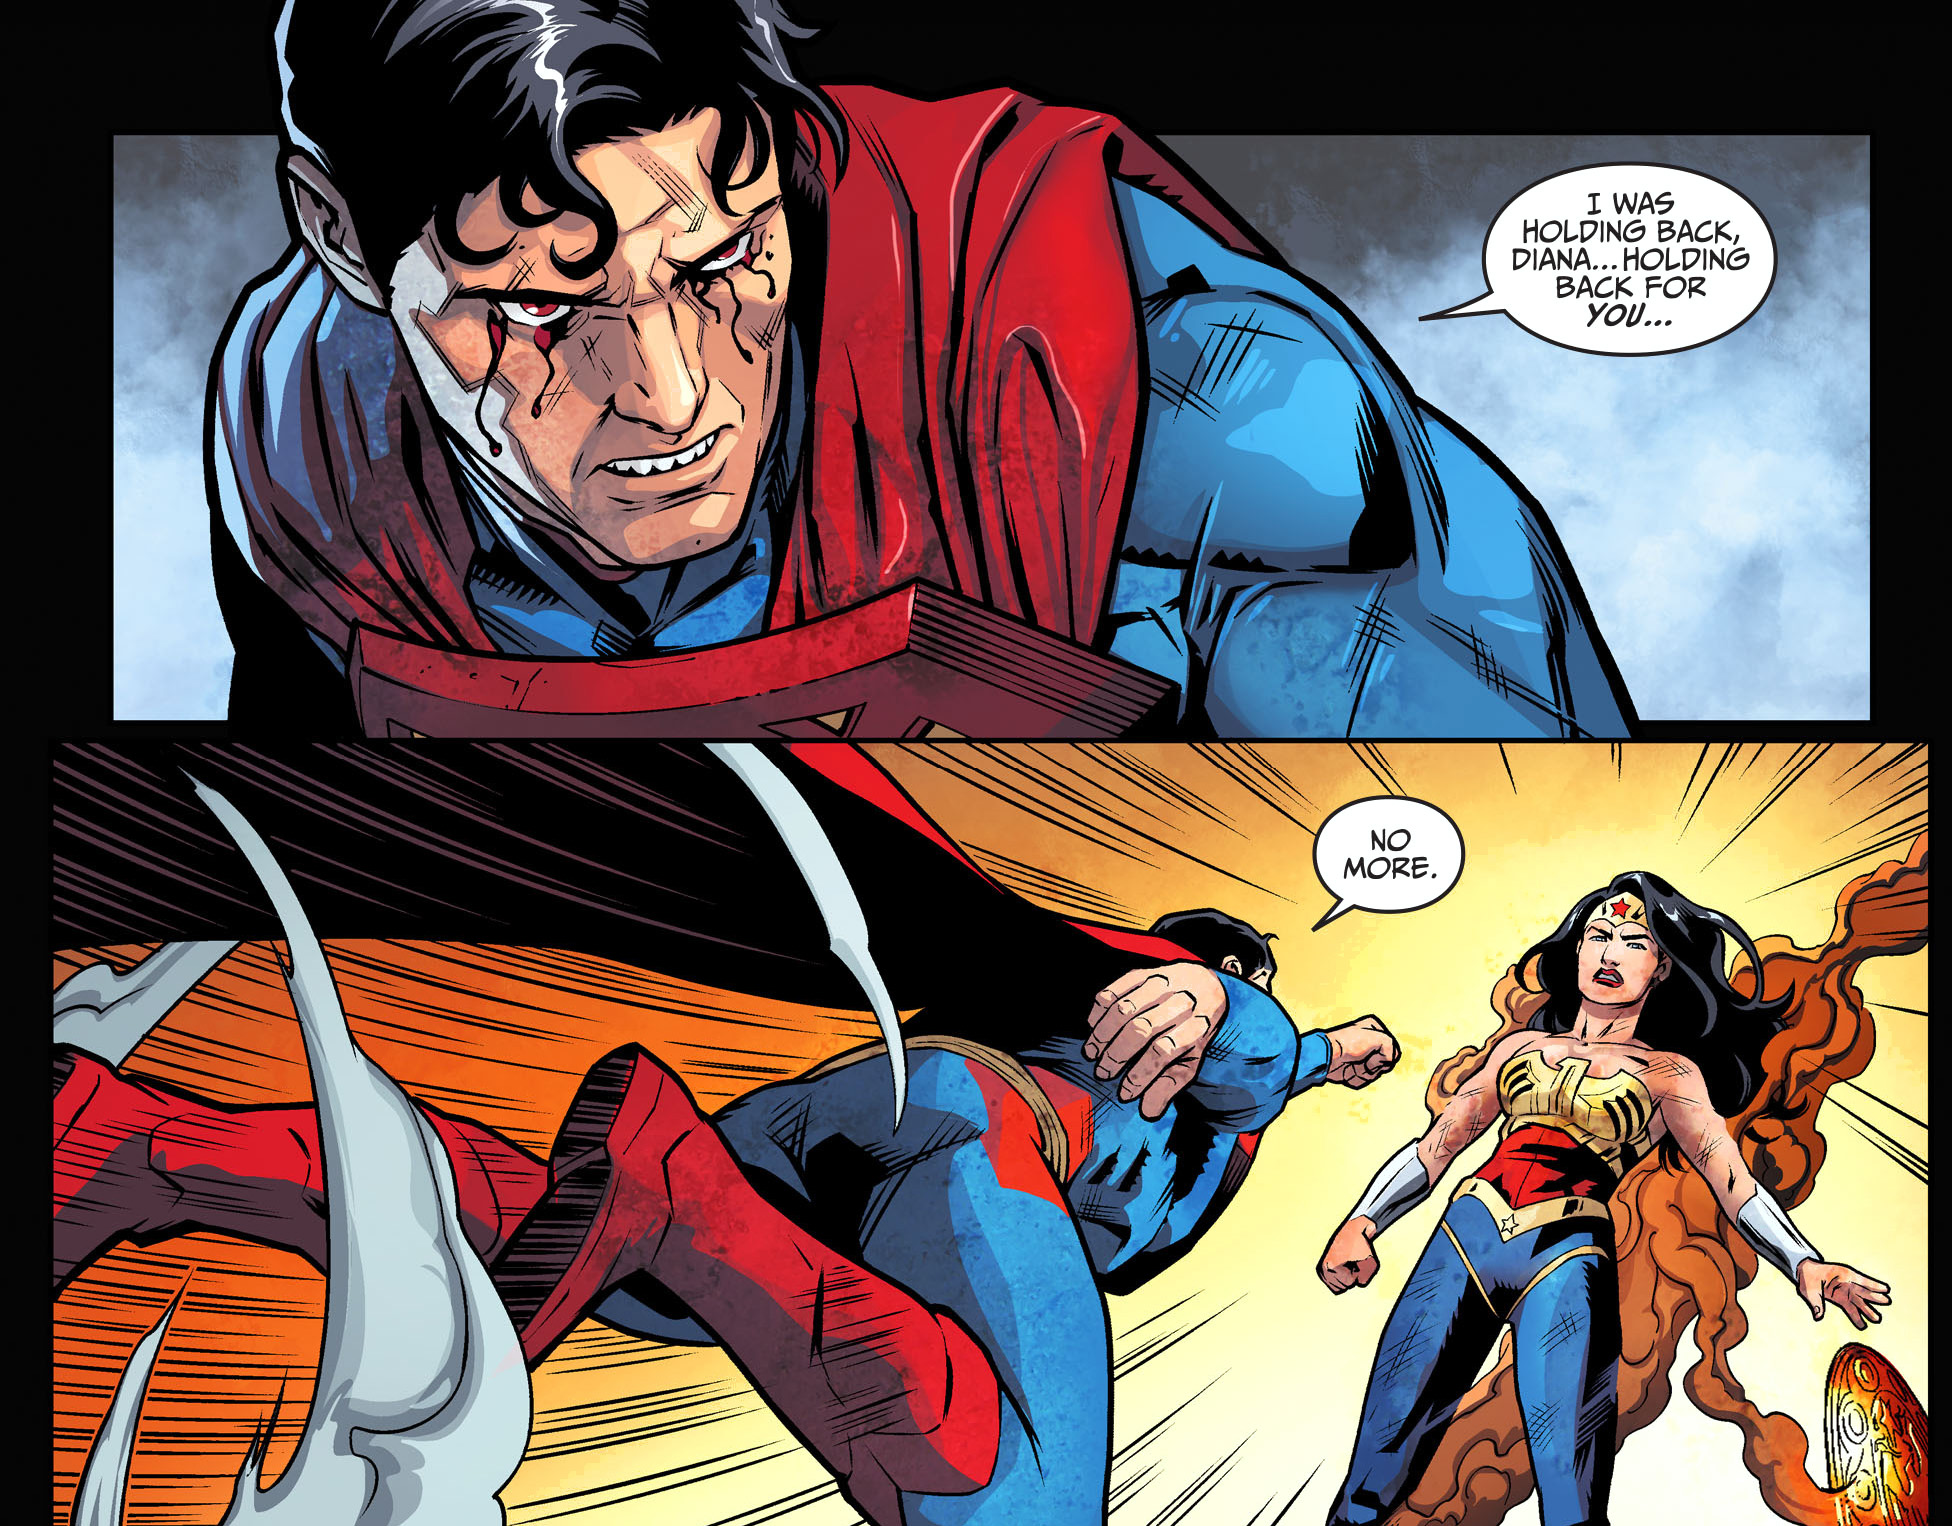 Superman Fights Wonder Woman With Only One Hand - Comicnewbies